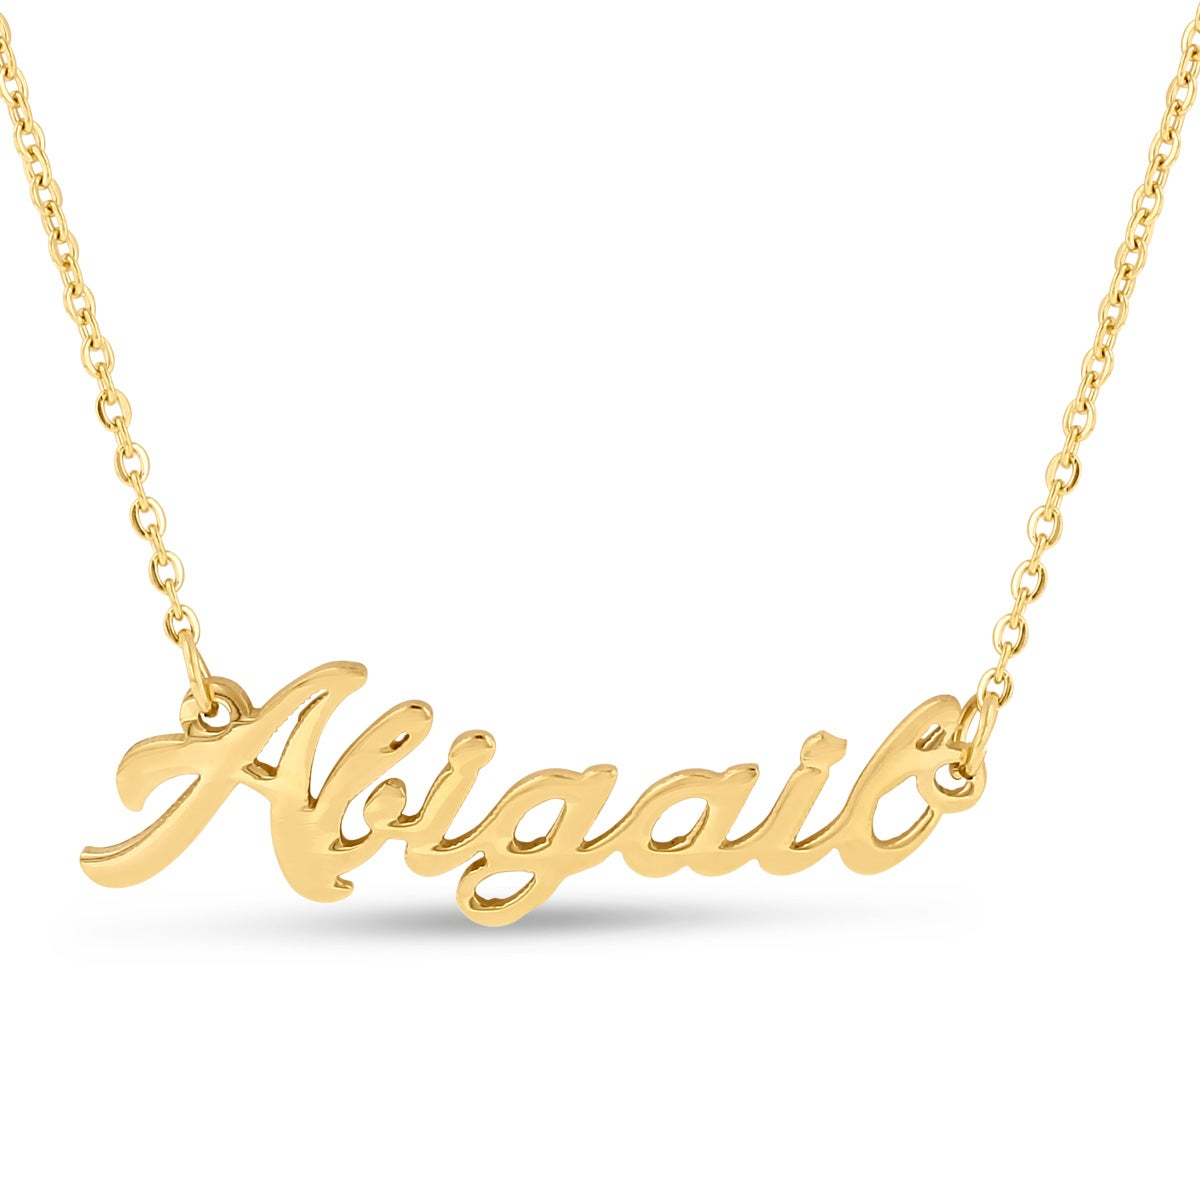 18k Goldplated Personalized Name Necklace (100 Names Available)